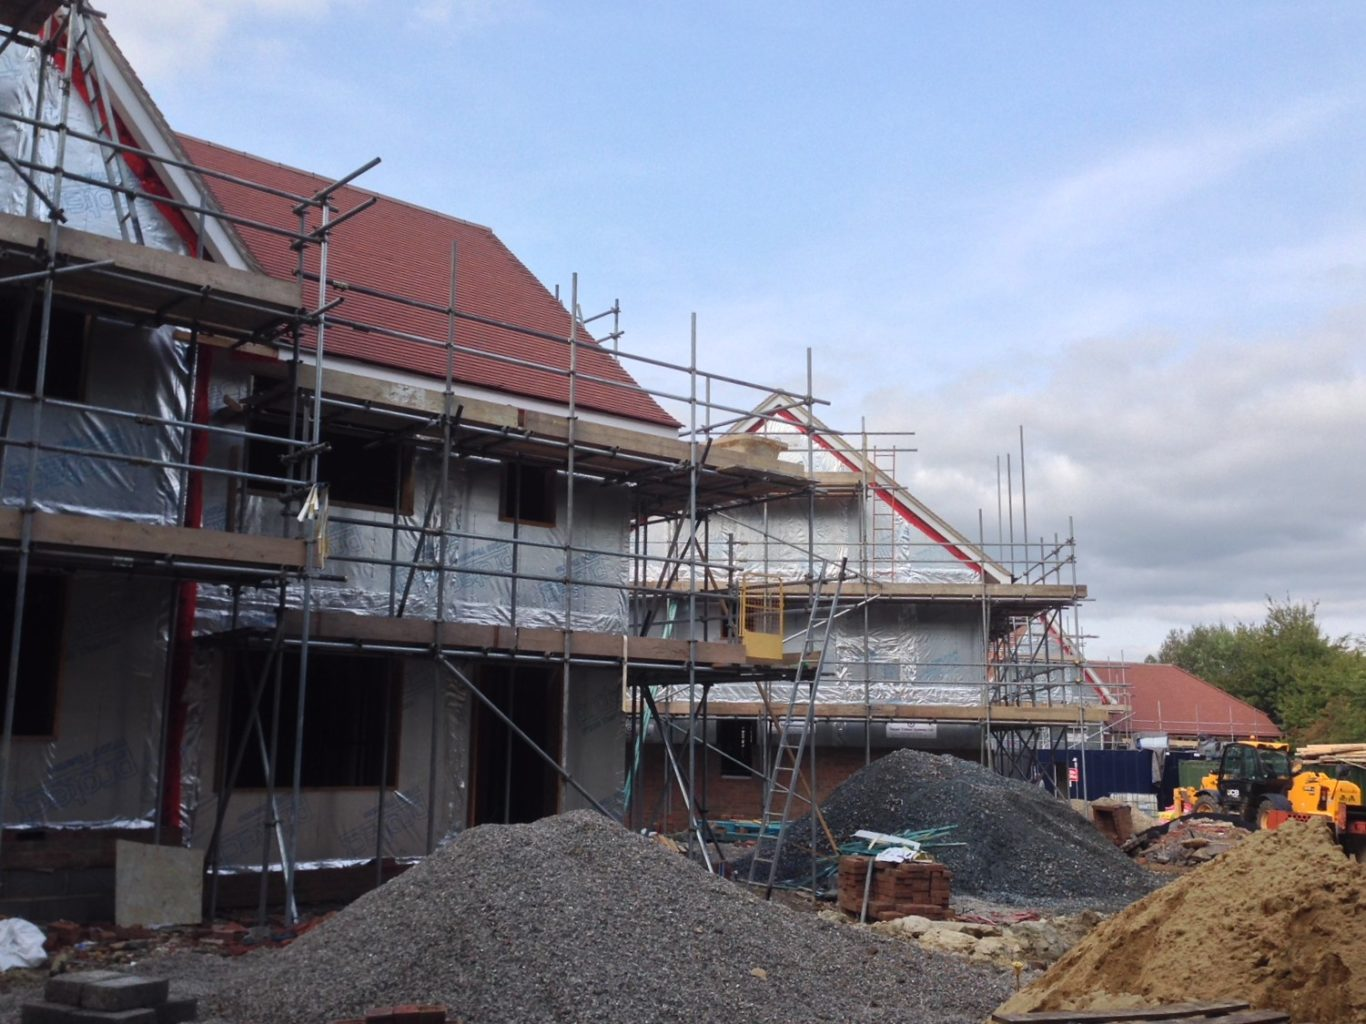 Register now for the new Affordable Homes in Bolney